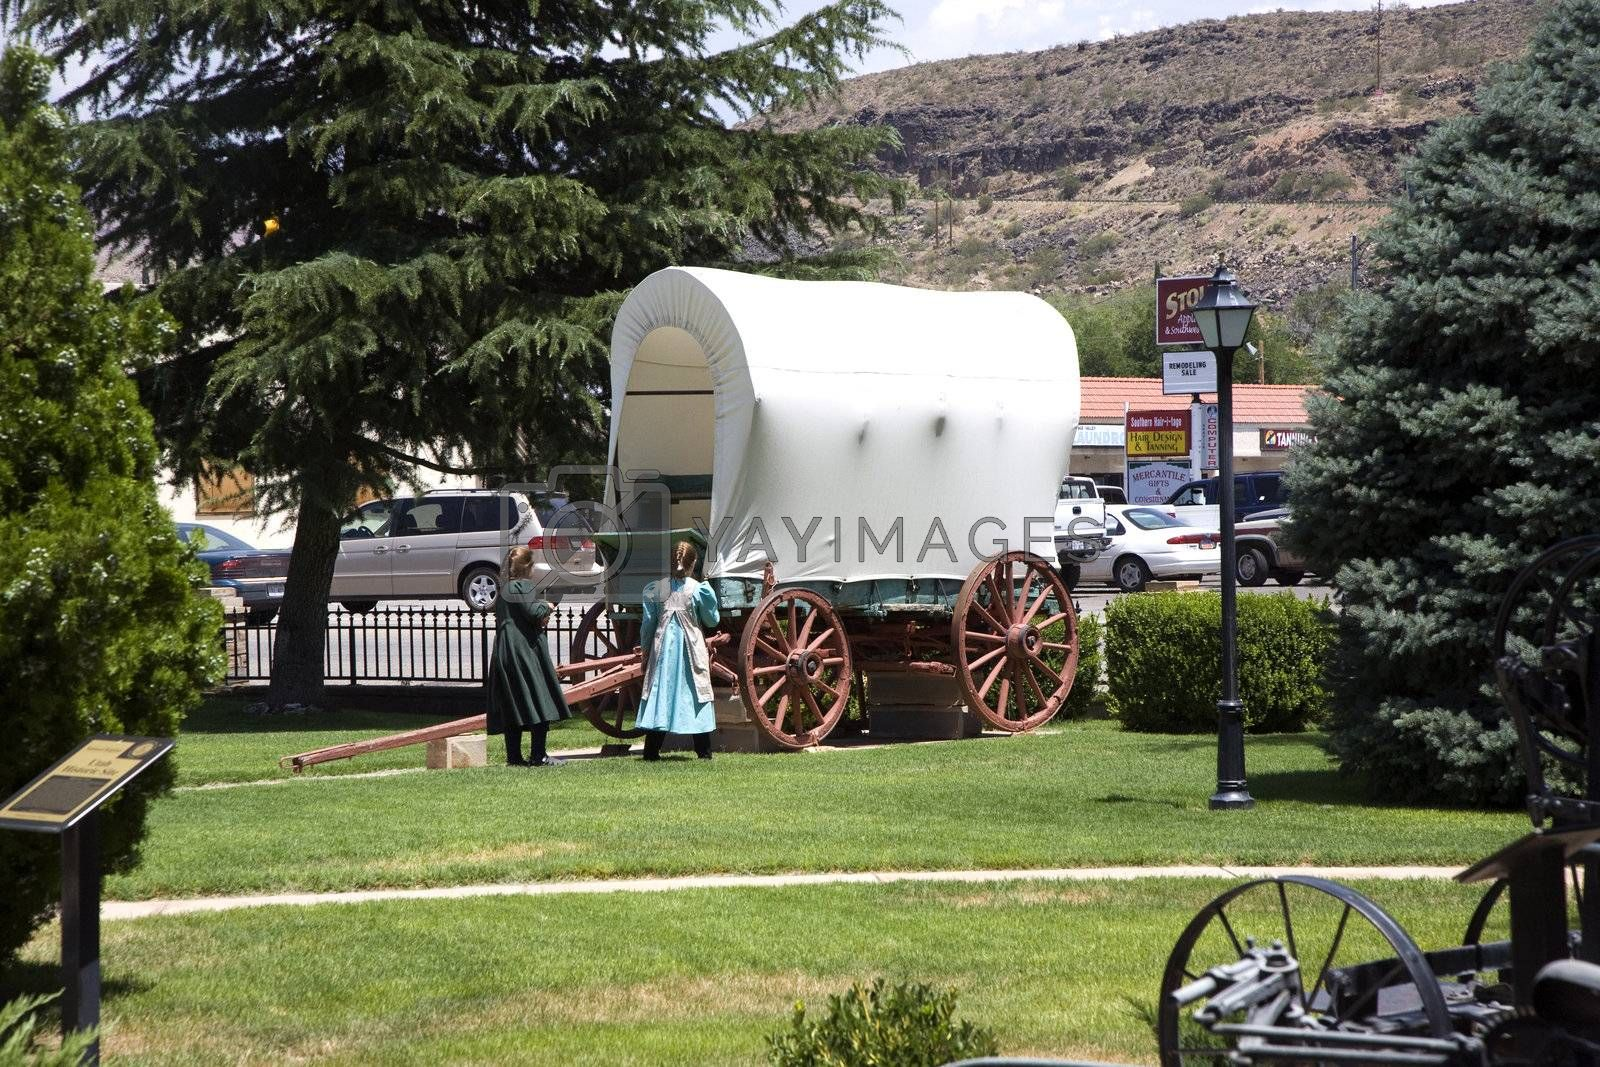 HURRICANE, USA - JULY 17: visiting the Museum of Hurricane with an old covered waggon of the early settlers  on July 17,2008 Hurricane, USA